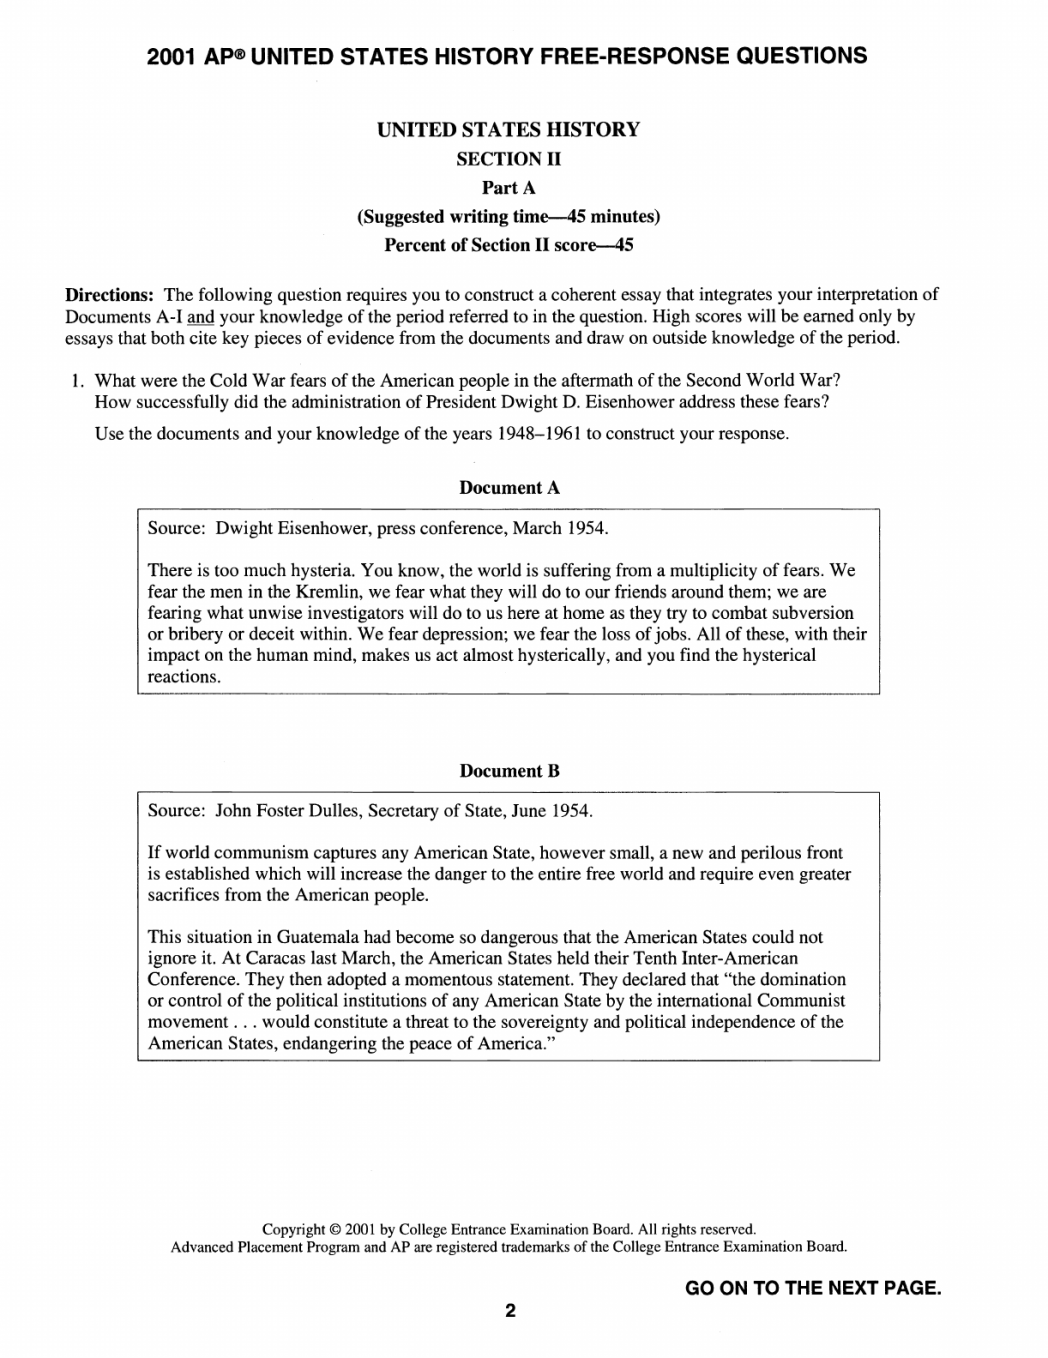 008 Conclusion Research Paper Pdf Uncategorized Causes Of World War Essay Questions Outline Introduction Rare Example Summary And Recommendation A Full